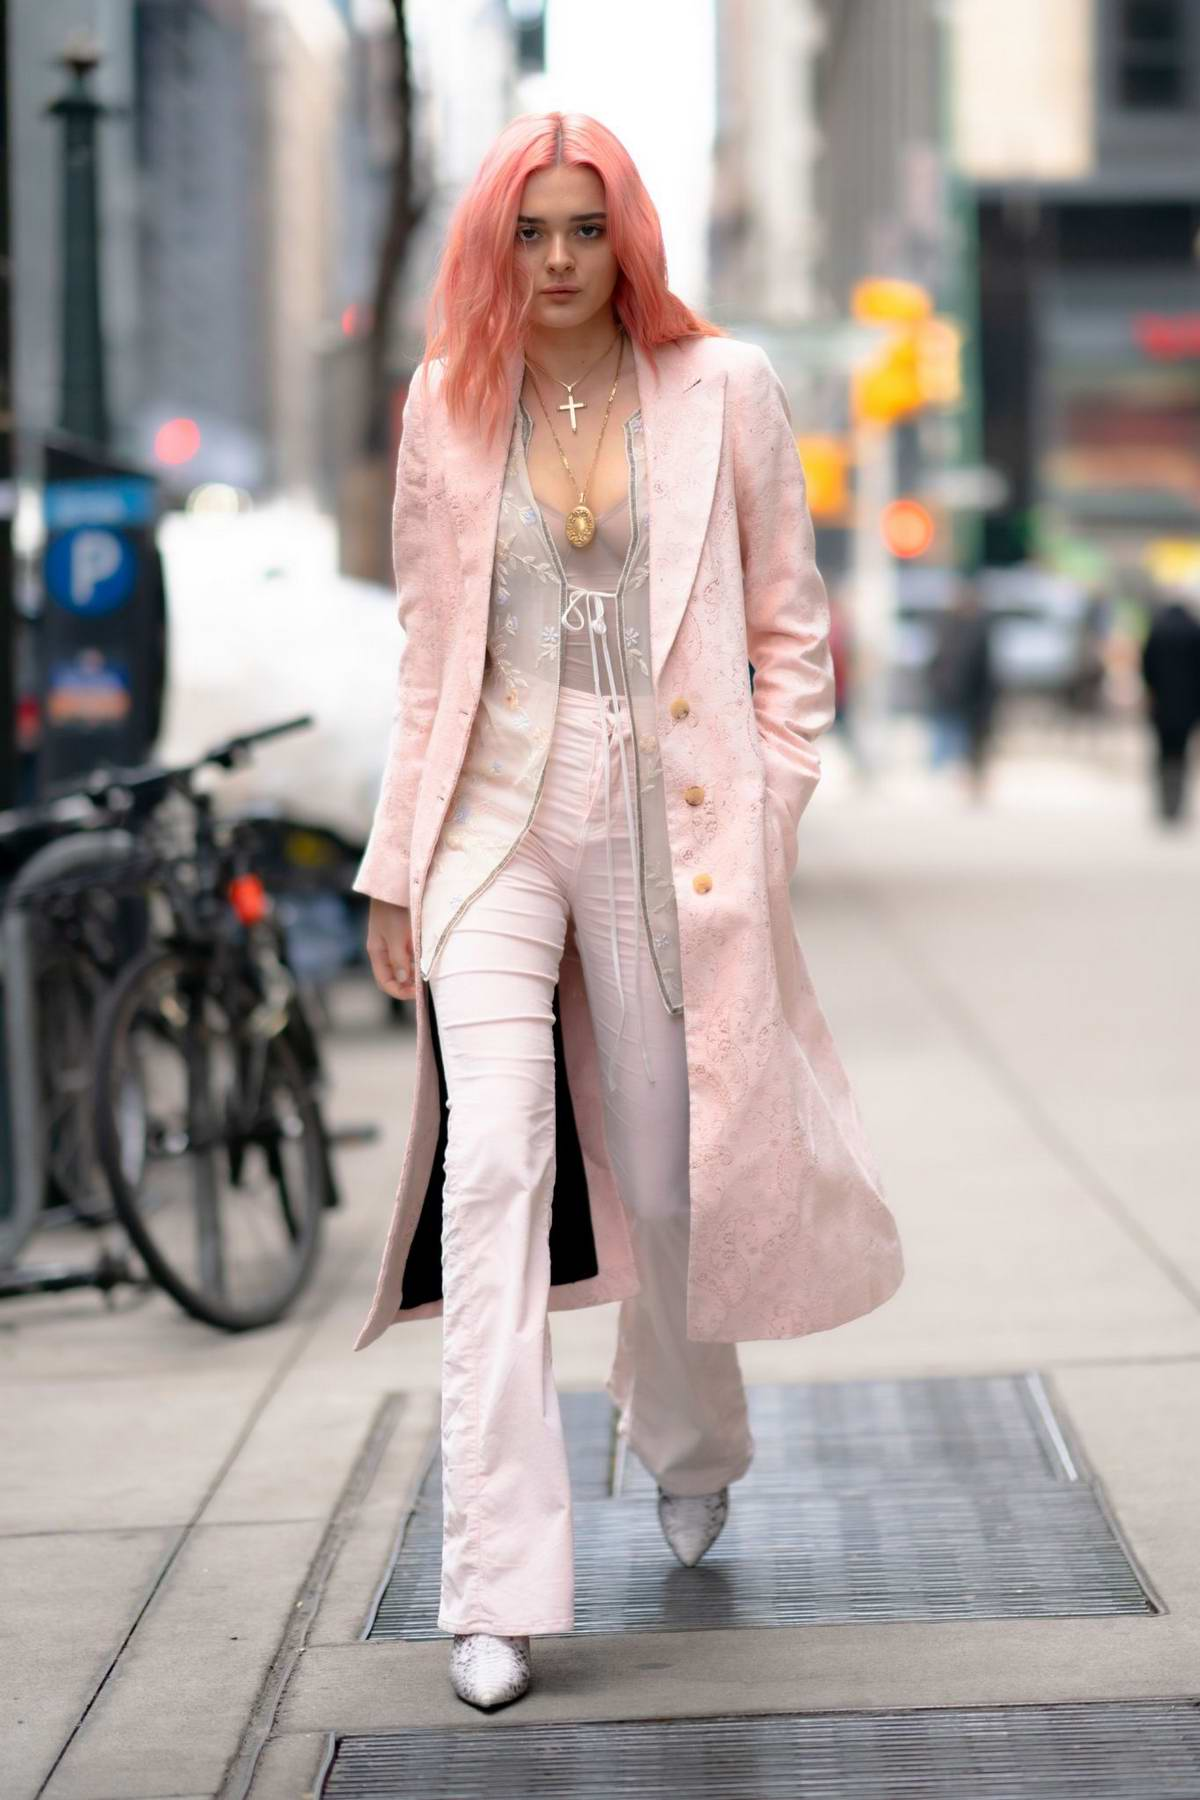 Charlotte Lawrence looks stunning in a light pink ensemble as she steps out in New York City